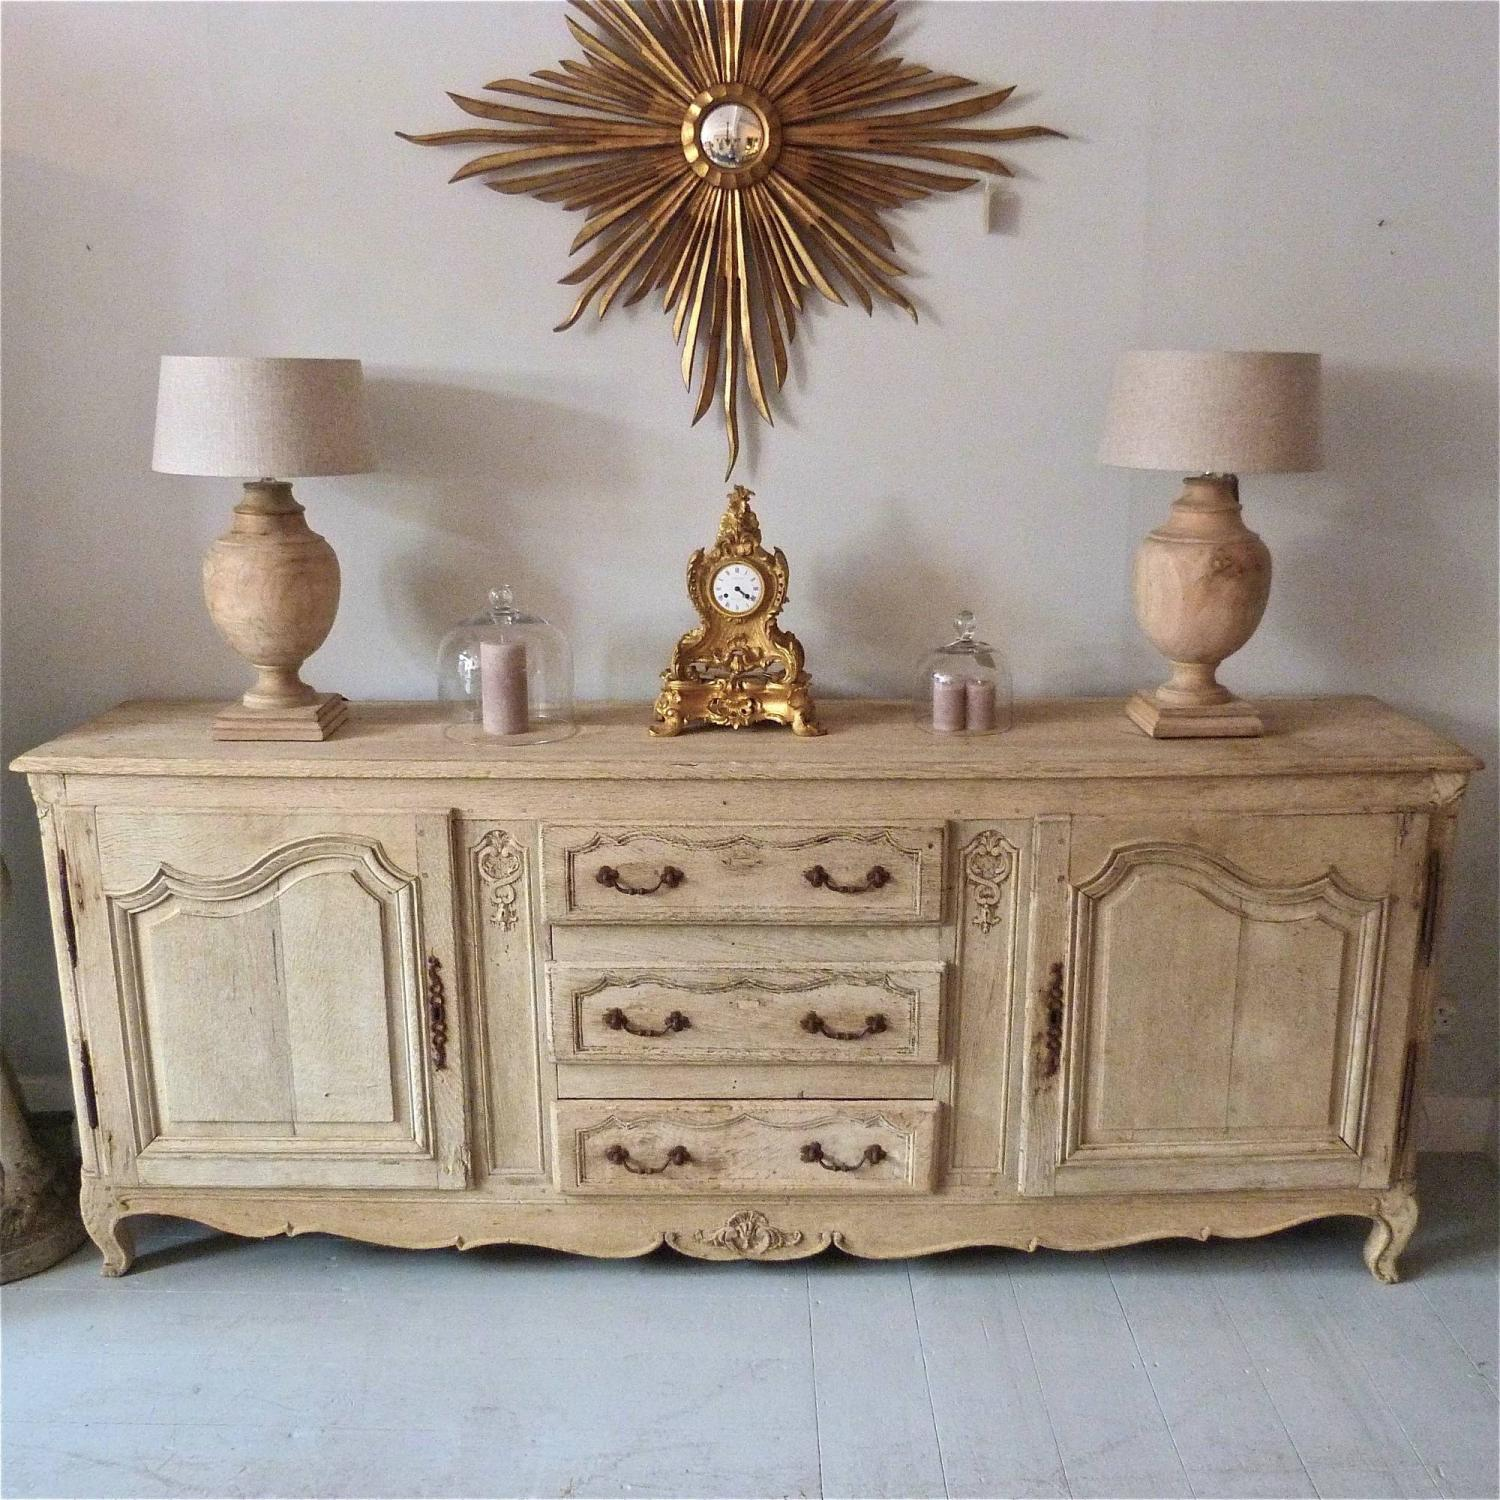 18TH CENTURY FRENCH BLEACHED OAK ENFILADE